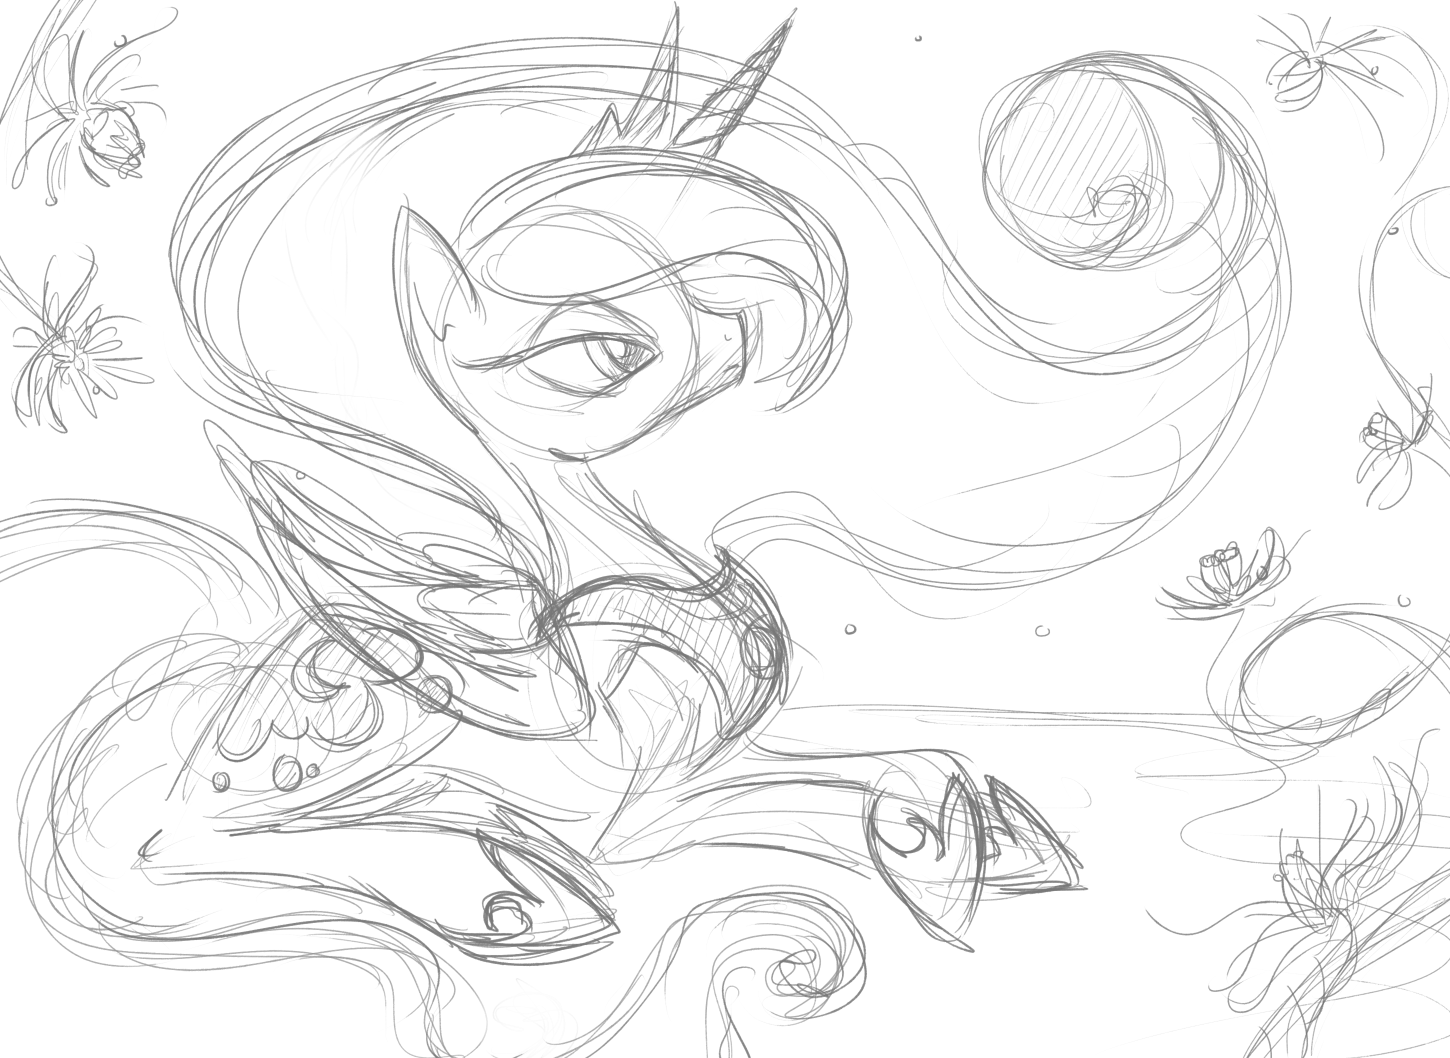 Printable My Little Pony Friendship Is Magic Princess Celestia Coloring Pages additionally How To Paint A Tree Mural together with Love Always further Fluttershy S Funeral 467919393 furthermore My Cutie Mark By Crescentmoon1996 D5f71op 382685953. on nightmare moon wallpaper